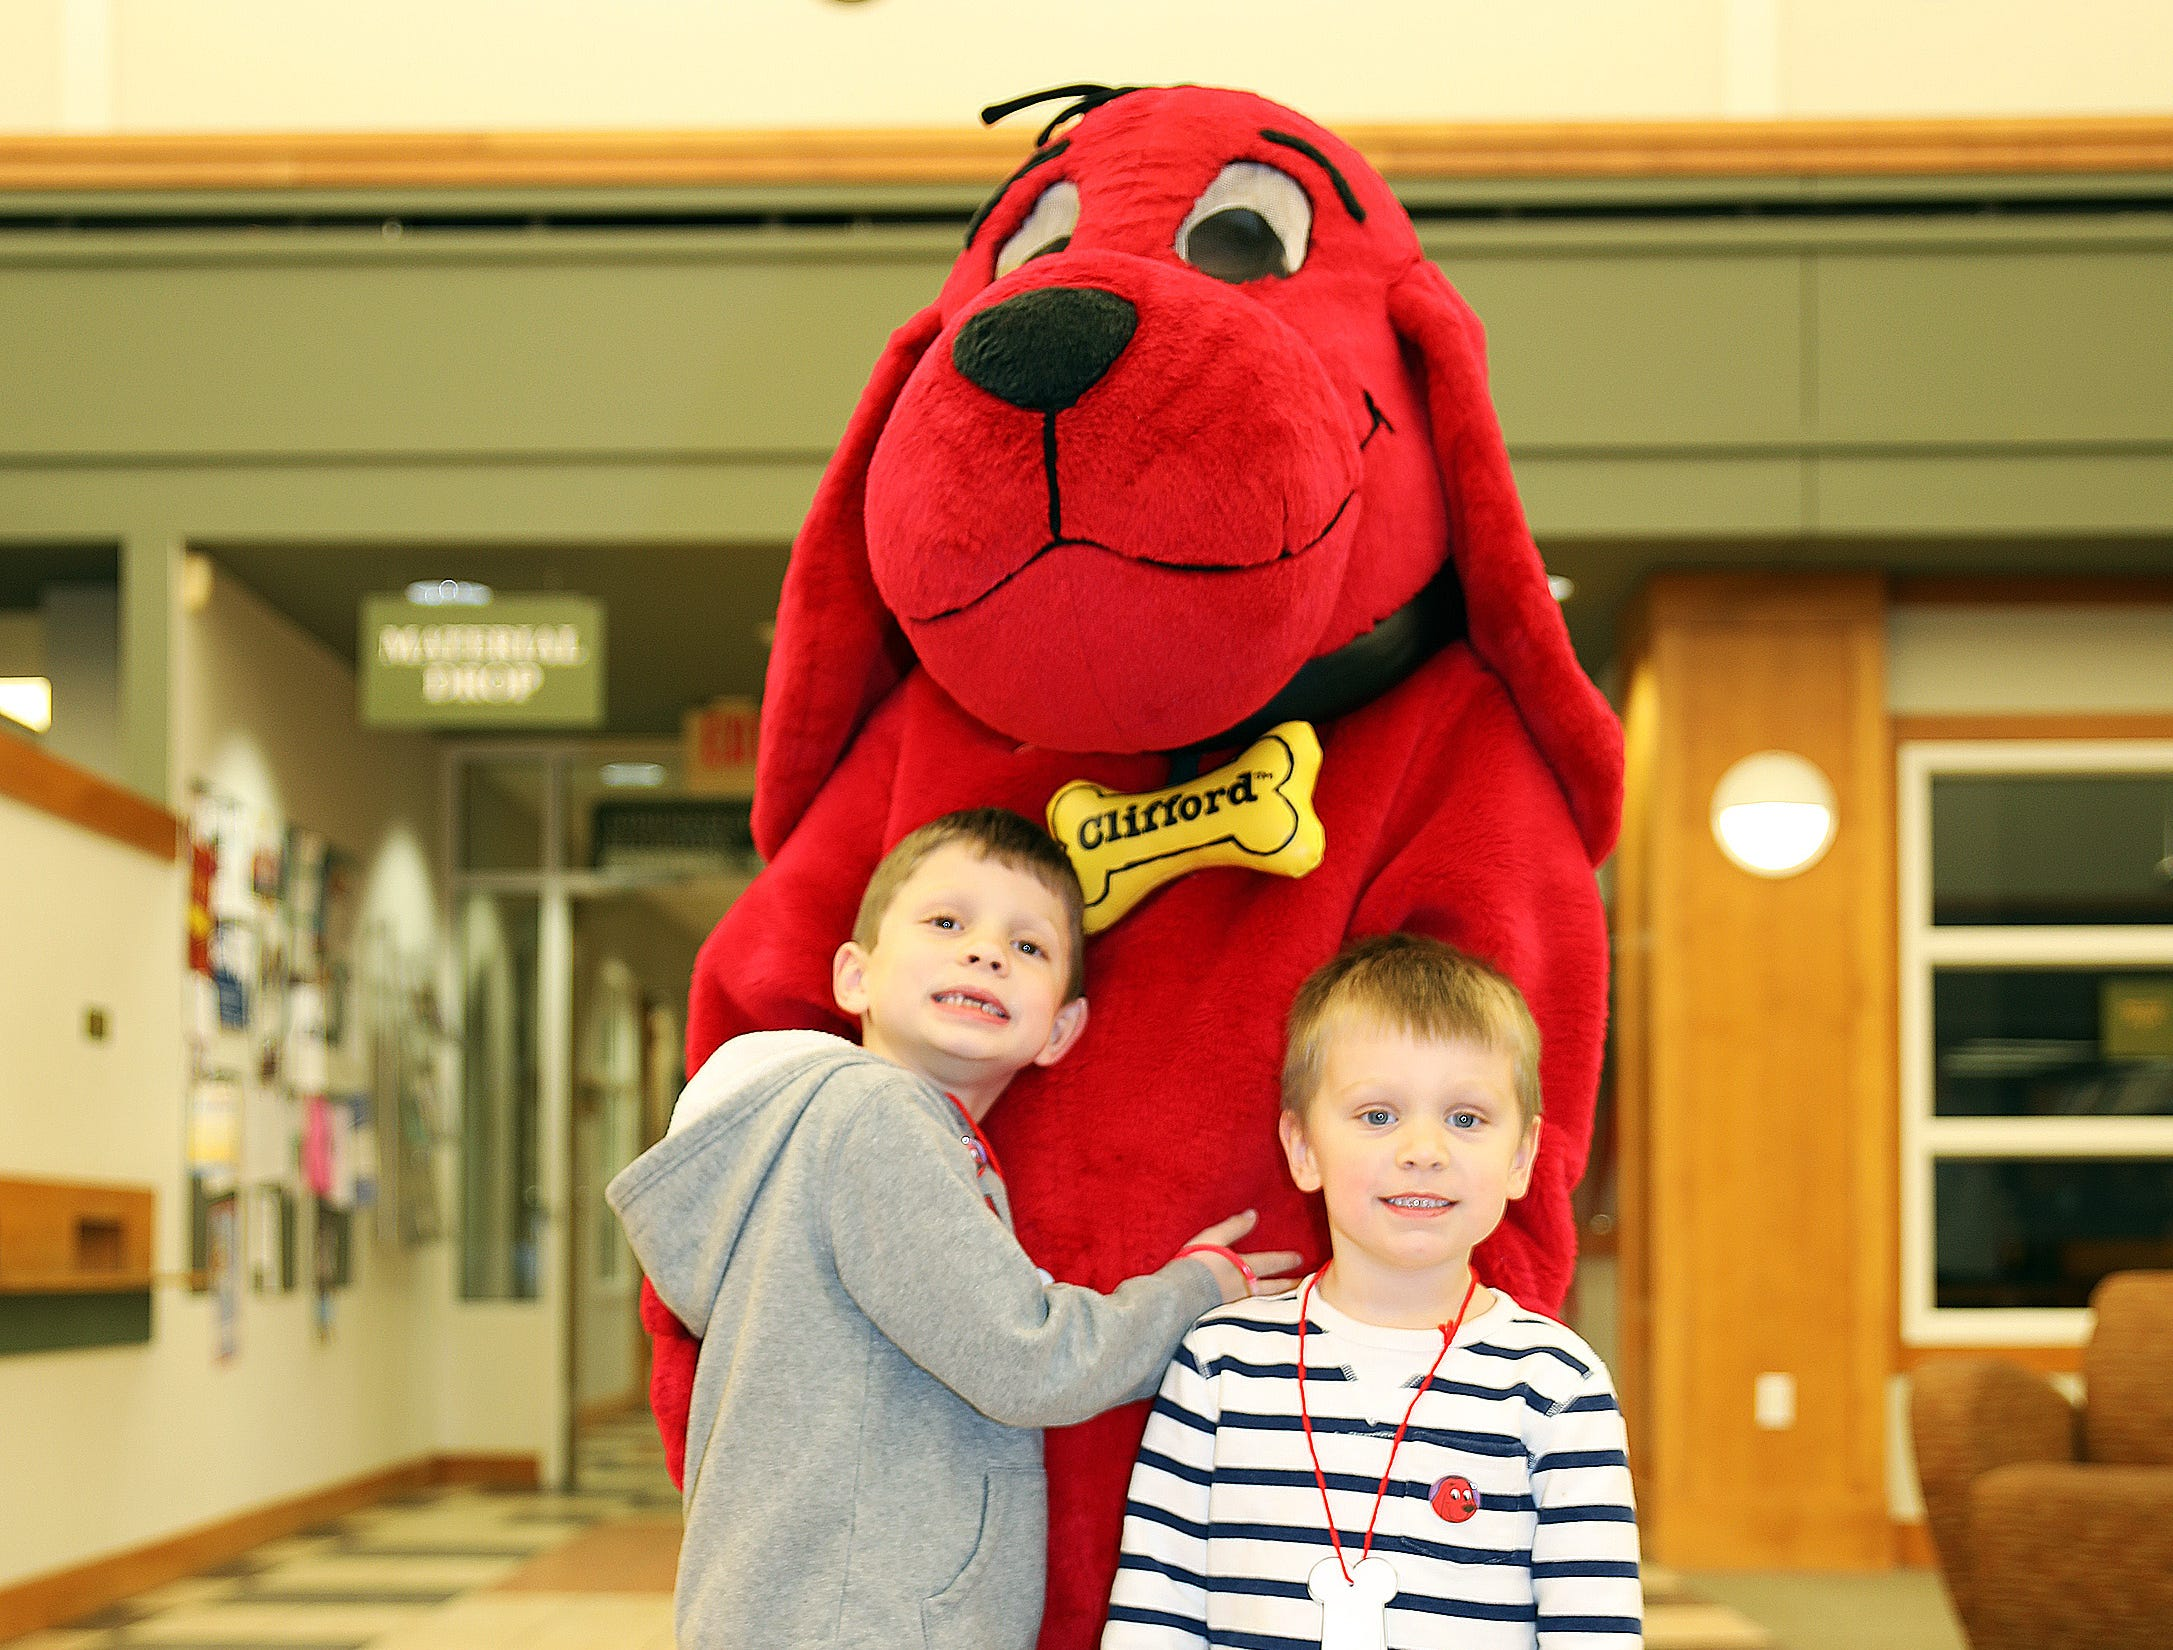 Zachary, 6, and Henry Robinson, 3, of Ankeny enjoy meeting Clifford the Big Red Dog at his birthday party at Kirkendall Public Library in Ankeny on Tuesday, Feb. 5, 2019.